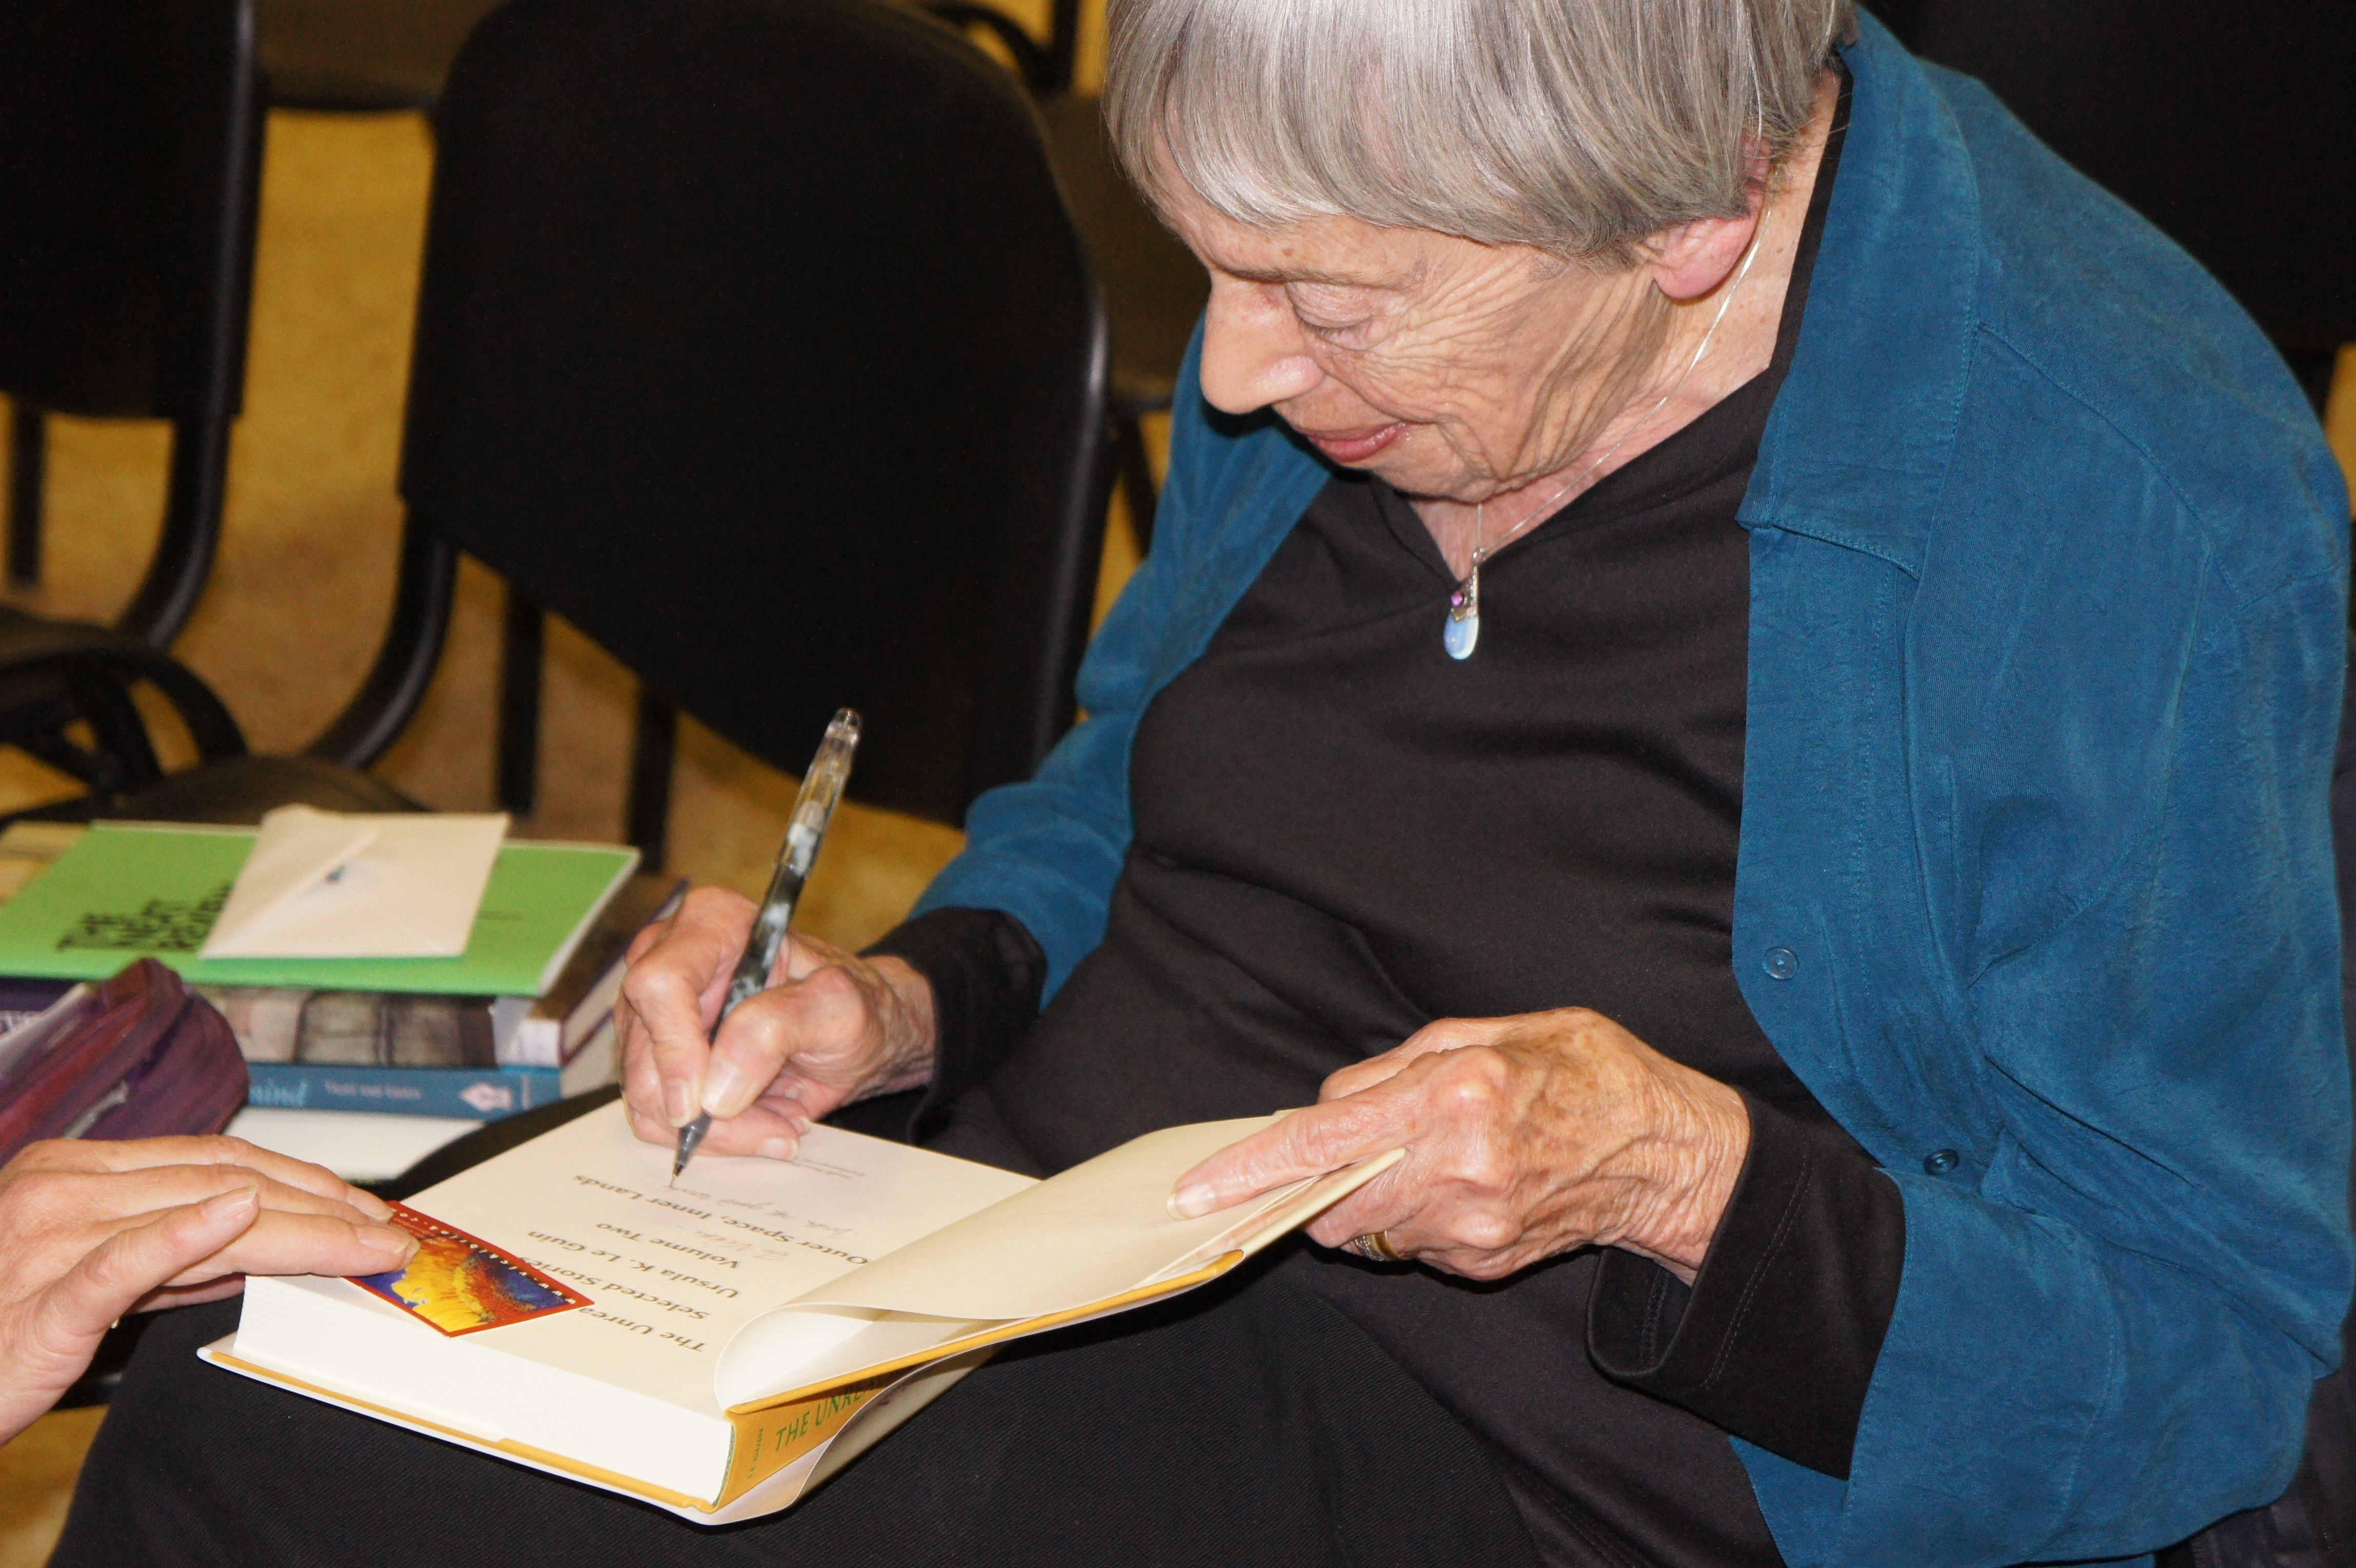 Ursula K. Le Guin Visits Dallas